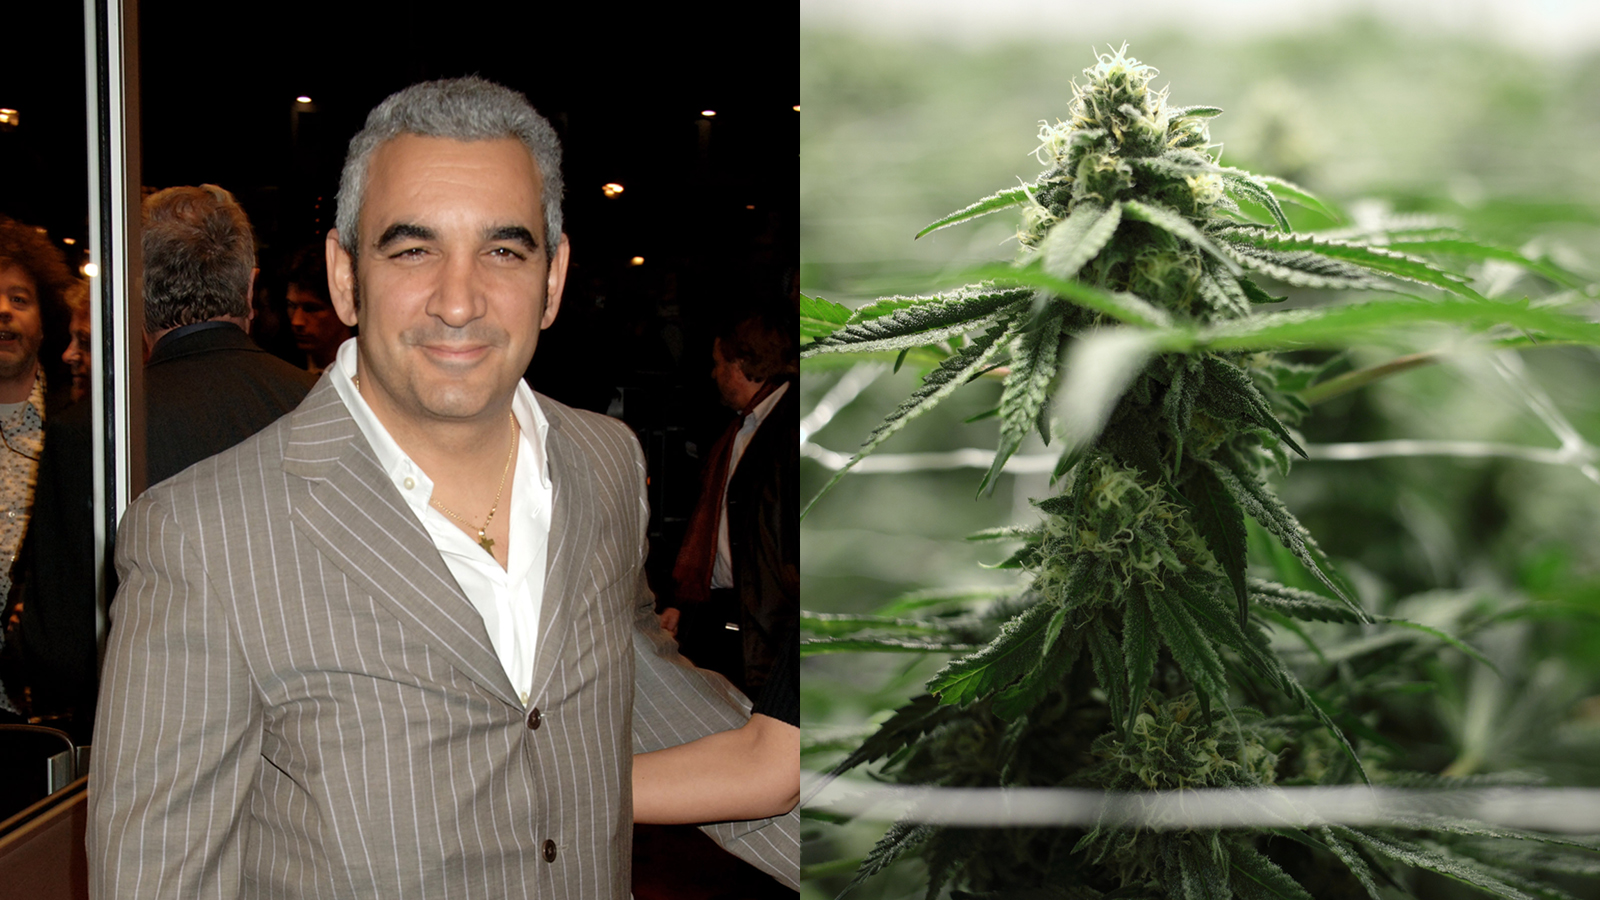 Coca-Cola Heir Billionaire Arrested for Allegedly Filling Plane with Weed Plants